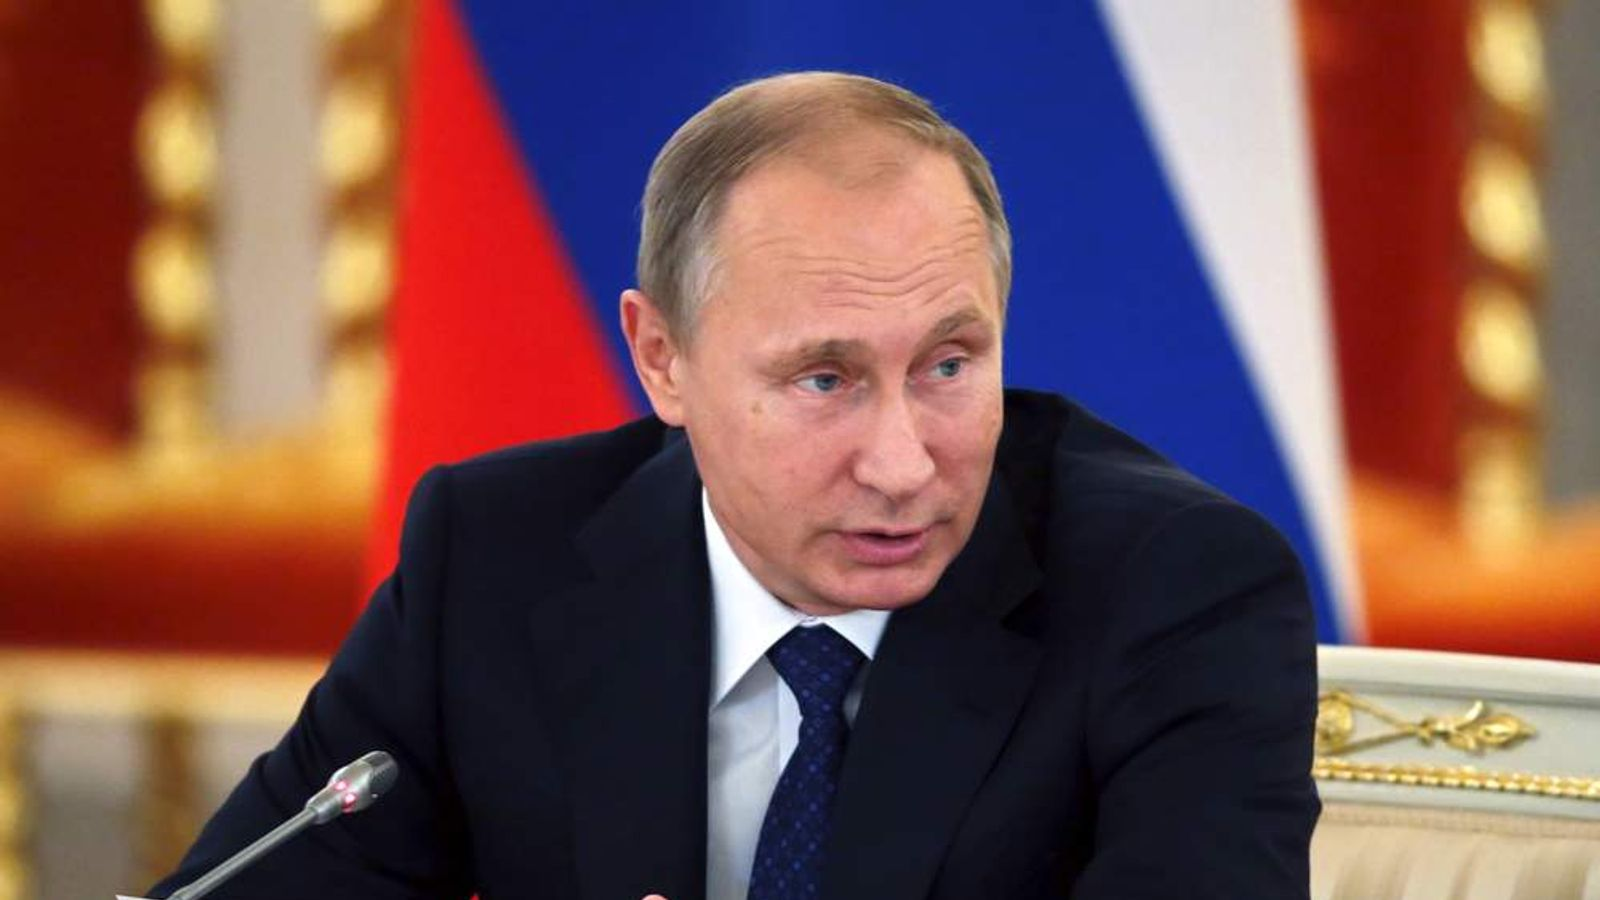 Putin attends a meeting with members of the Presidential Council for Civil Society and Human Rights in Moscow